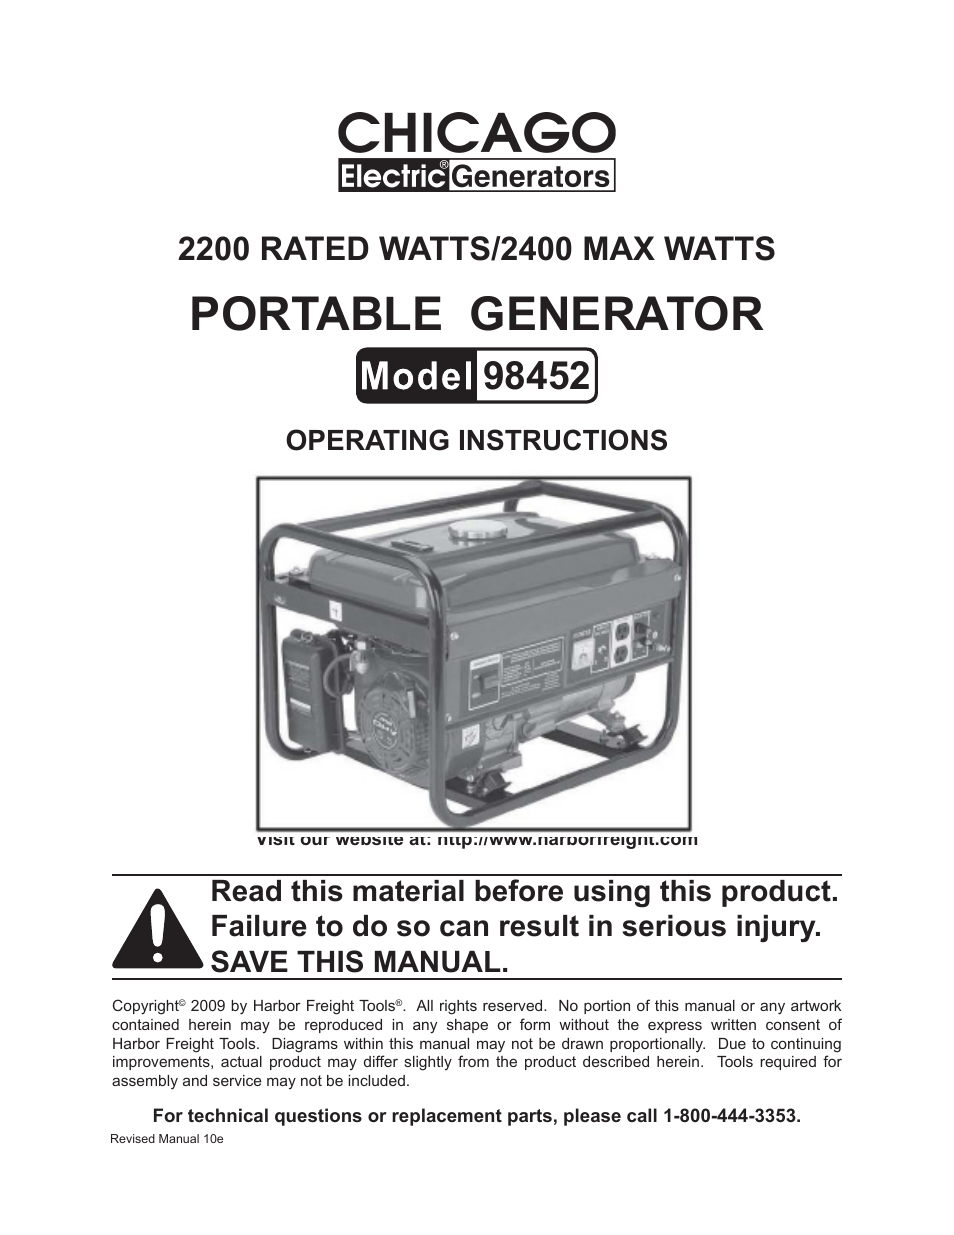 predator generator 8750 wiring diagram predator chicago electric generator wiring diagram diagram on predator generator 8750 wiring diagram